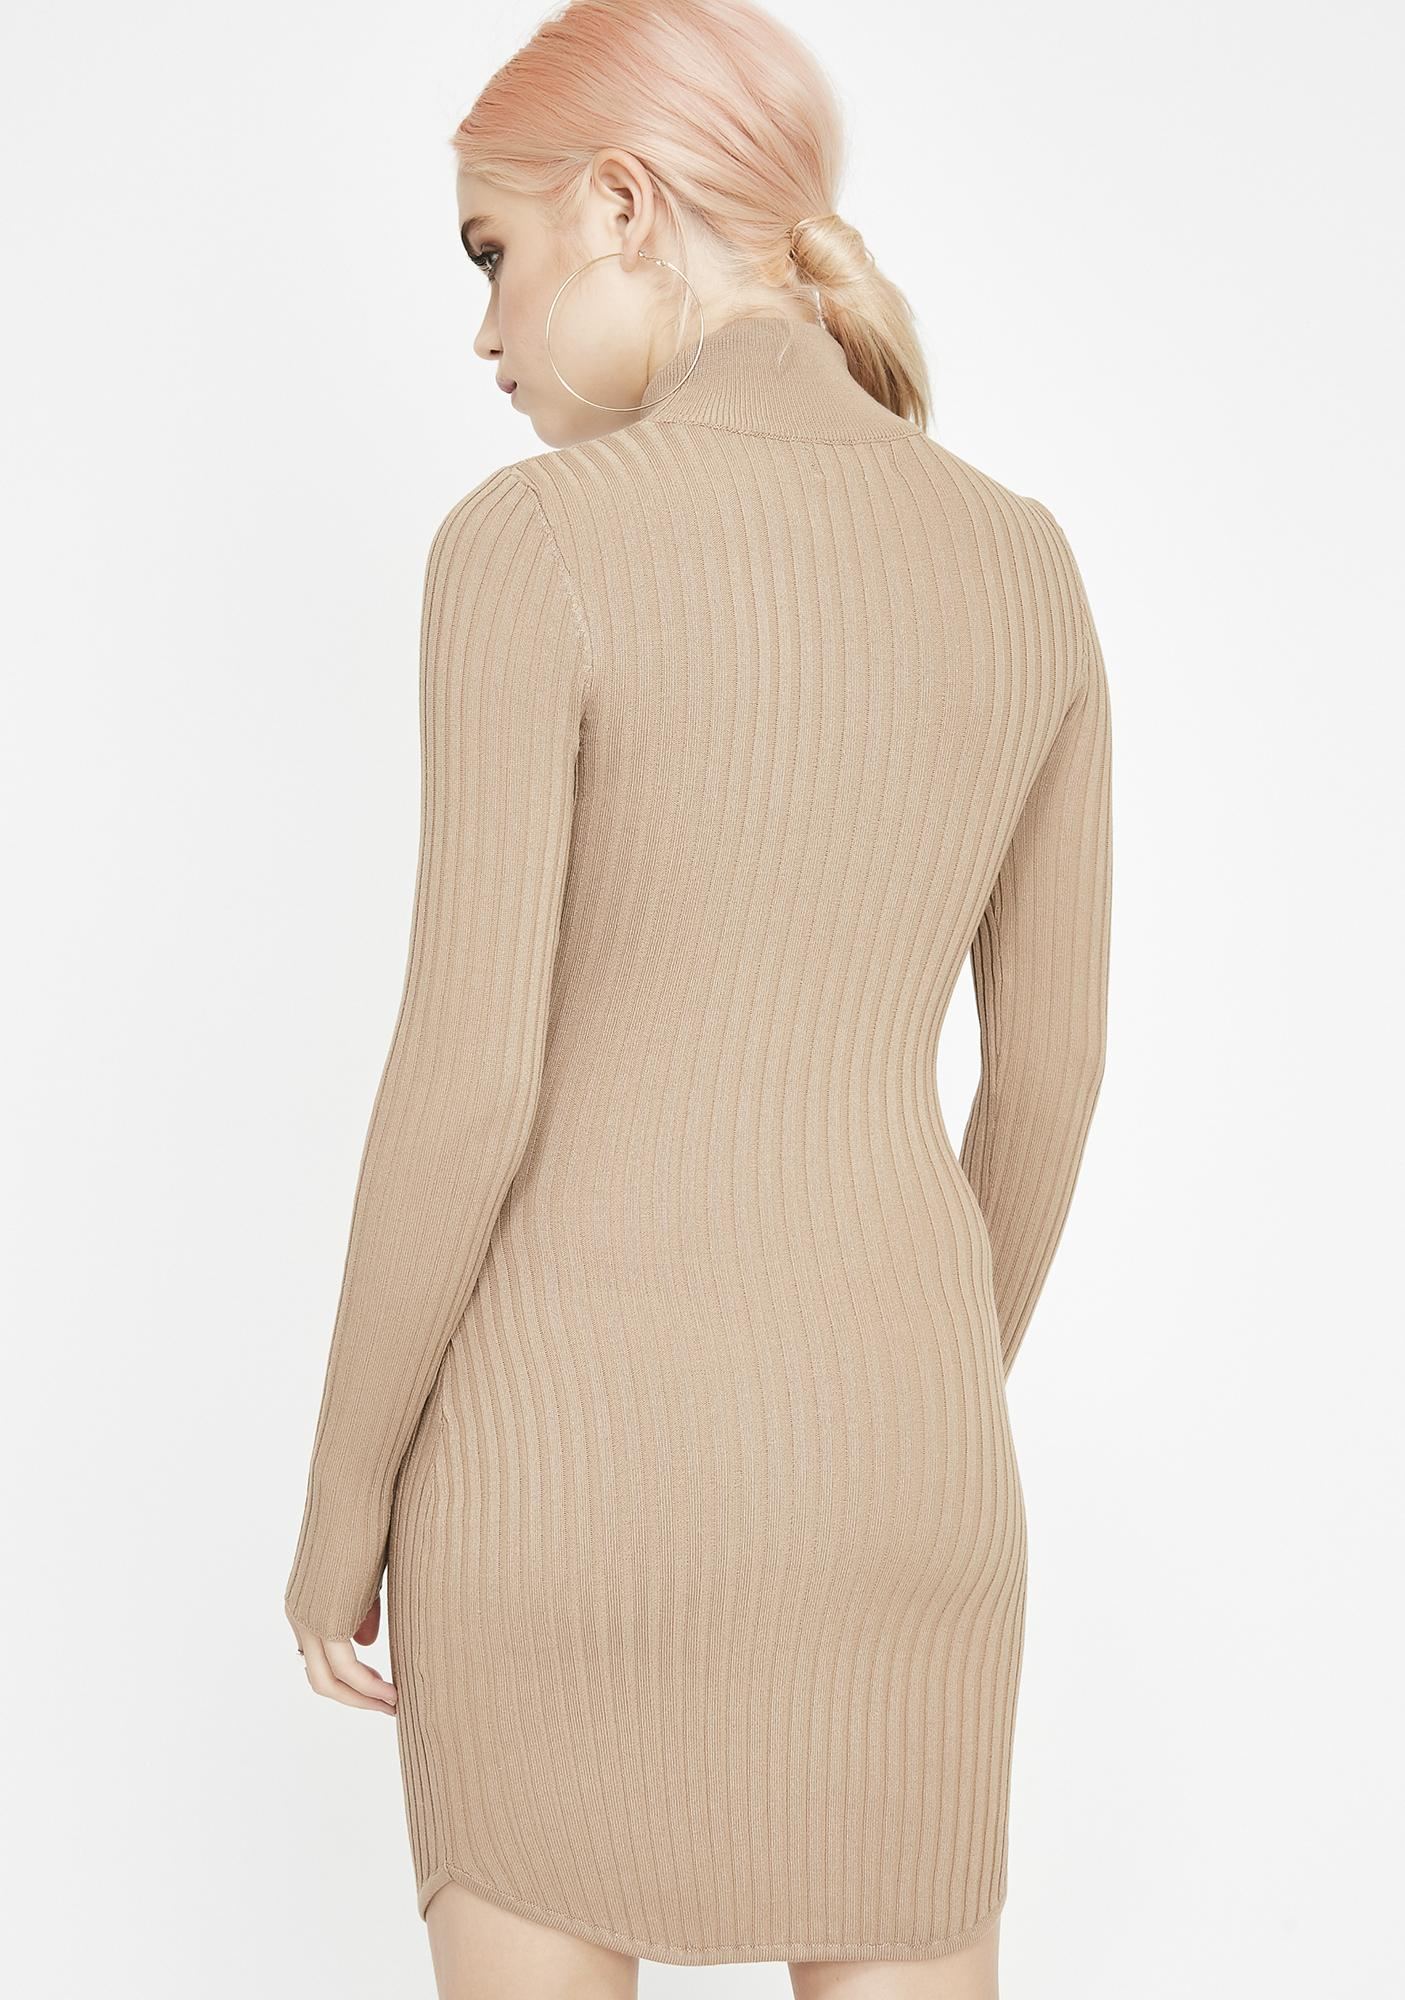 Above It All Knit Dress